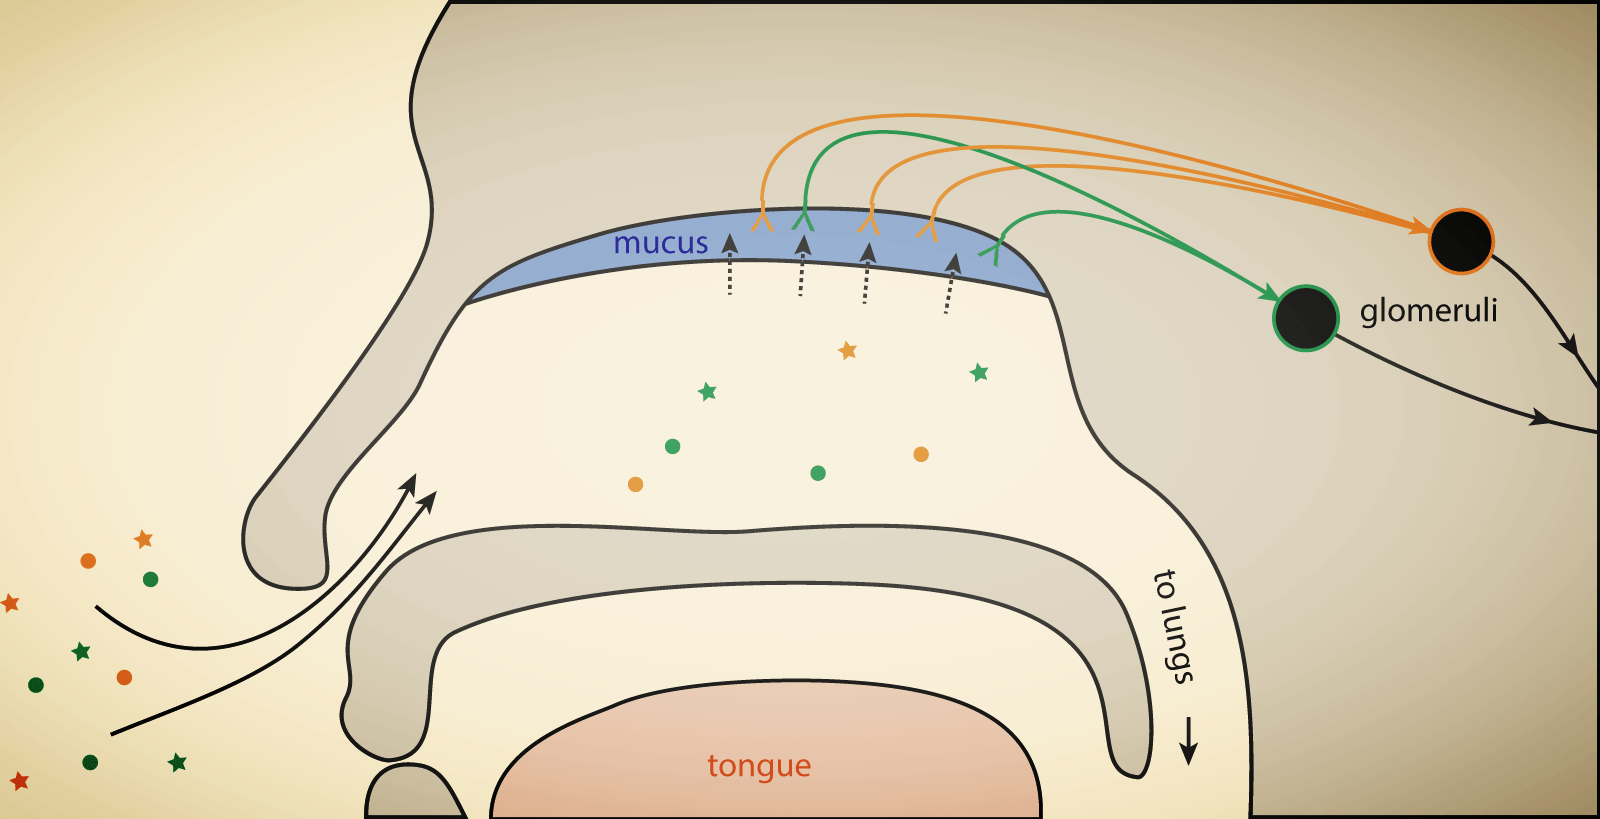 olfaction overview notext png [ 1600 x 819 Pixel ]